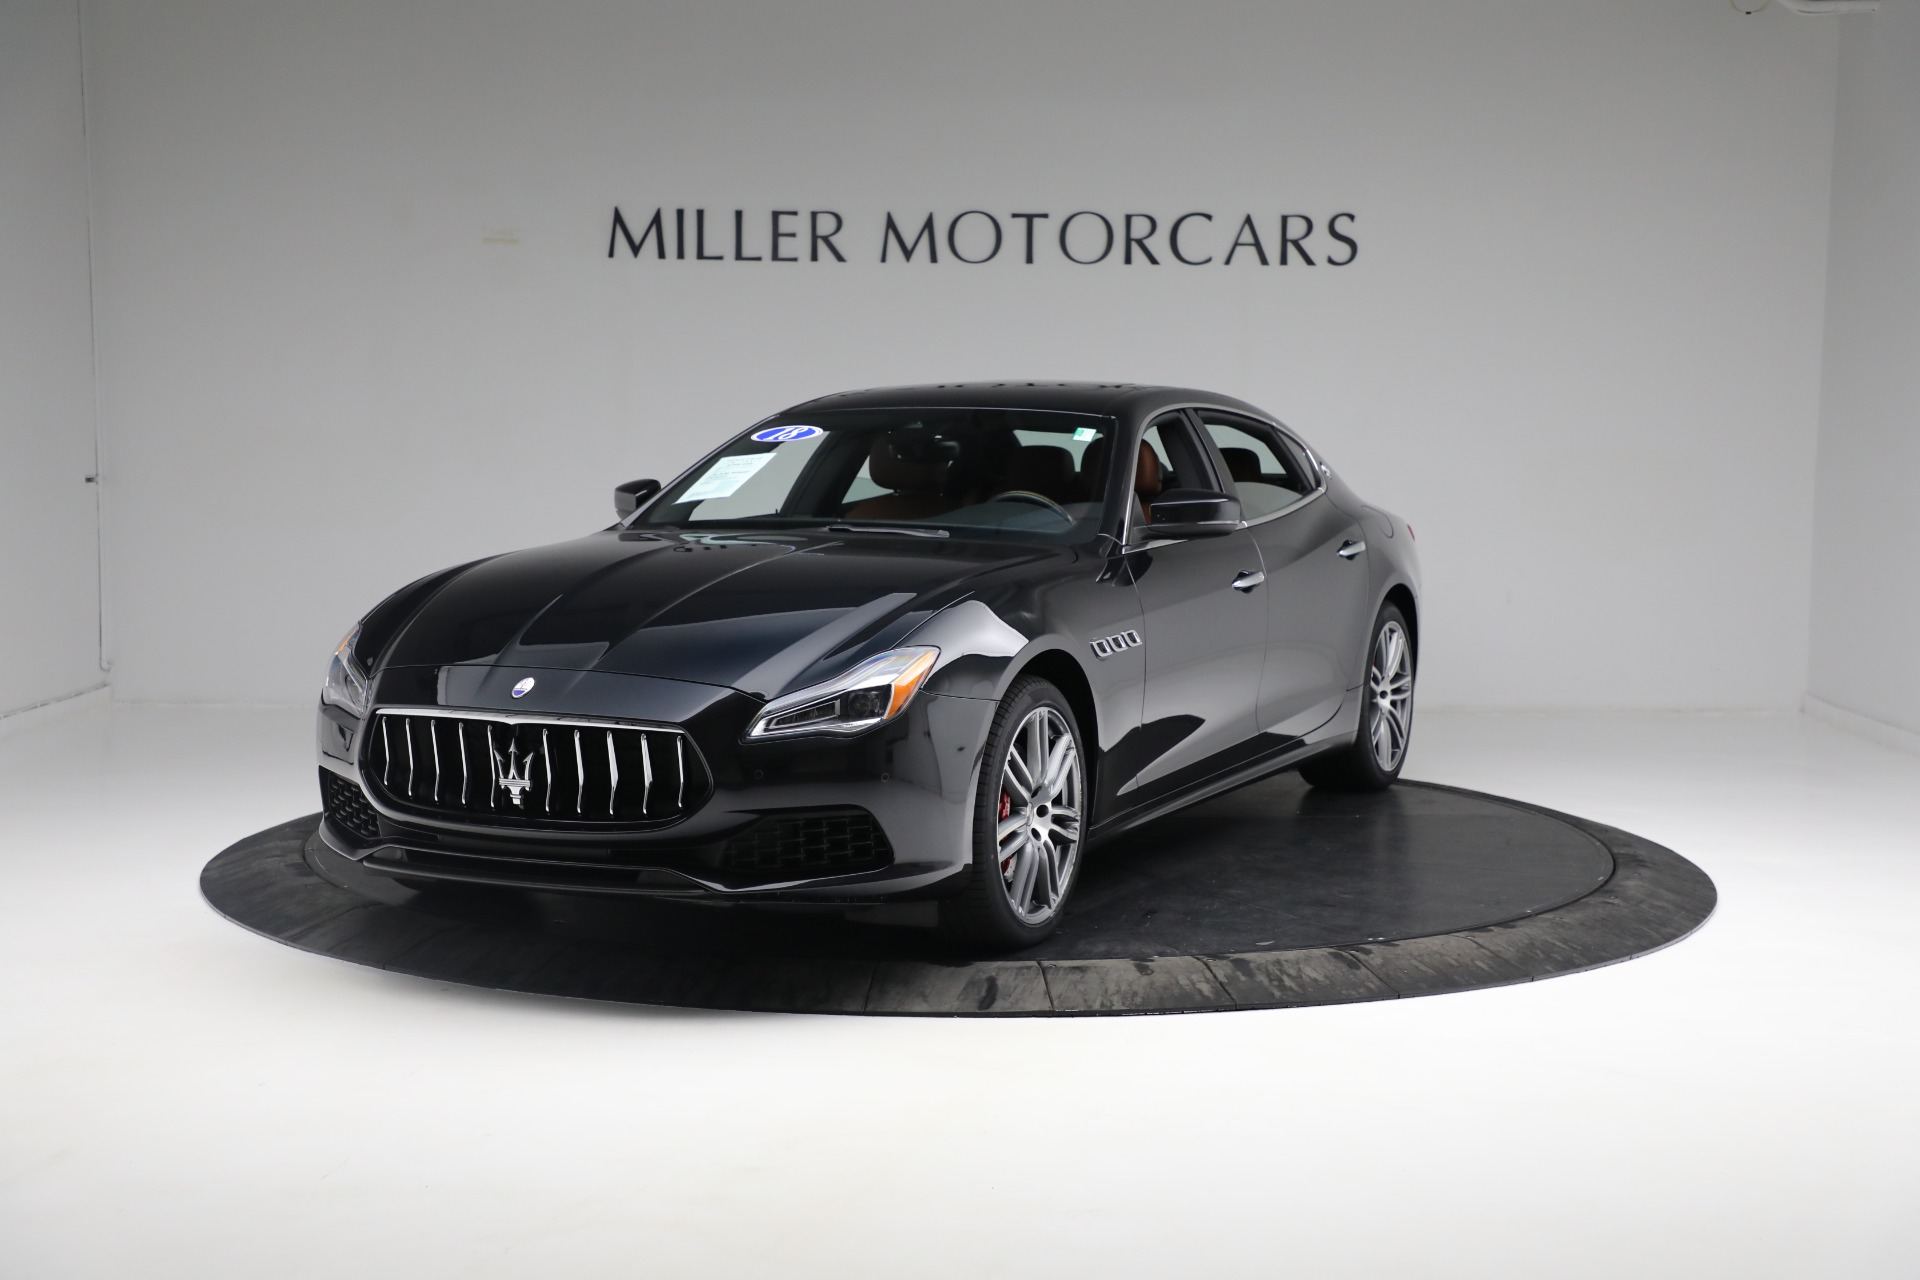 New 2018 Maserati Quattroporte S Q4 for sale Sold at Rolls-Royce Motor Cars Greenwich in Greenwich CT 06830 1